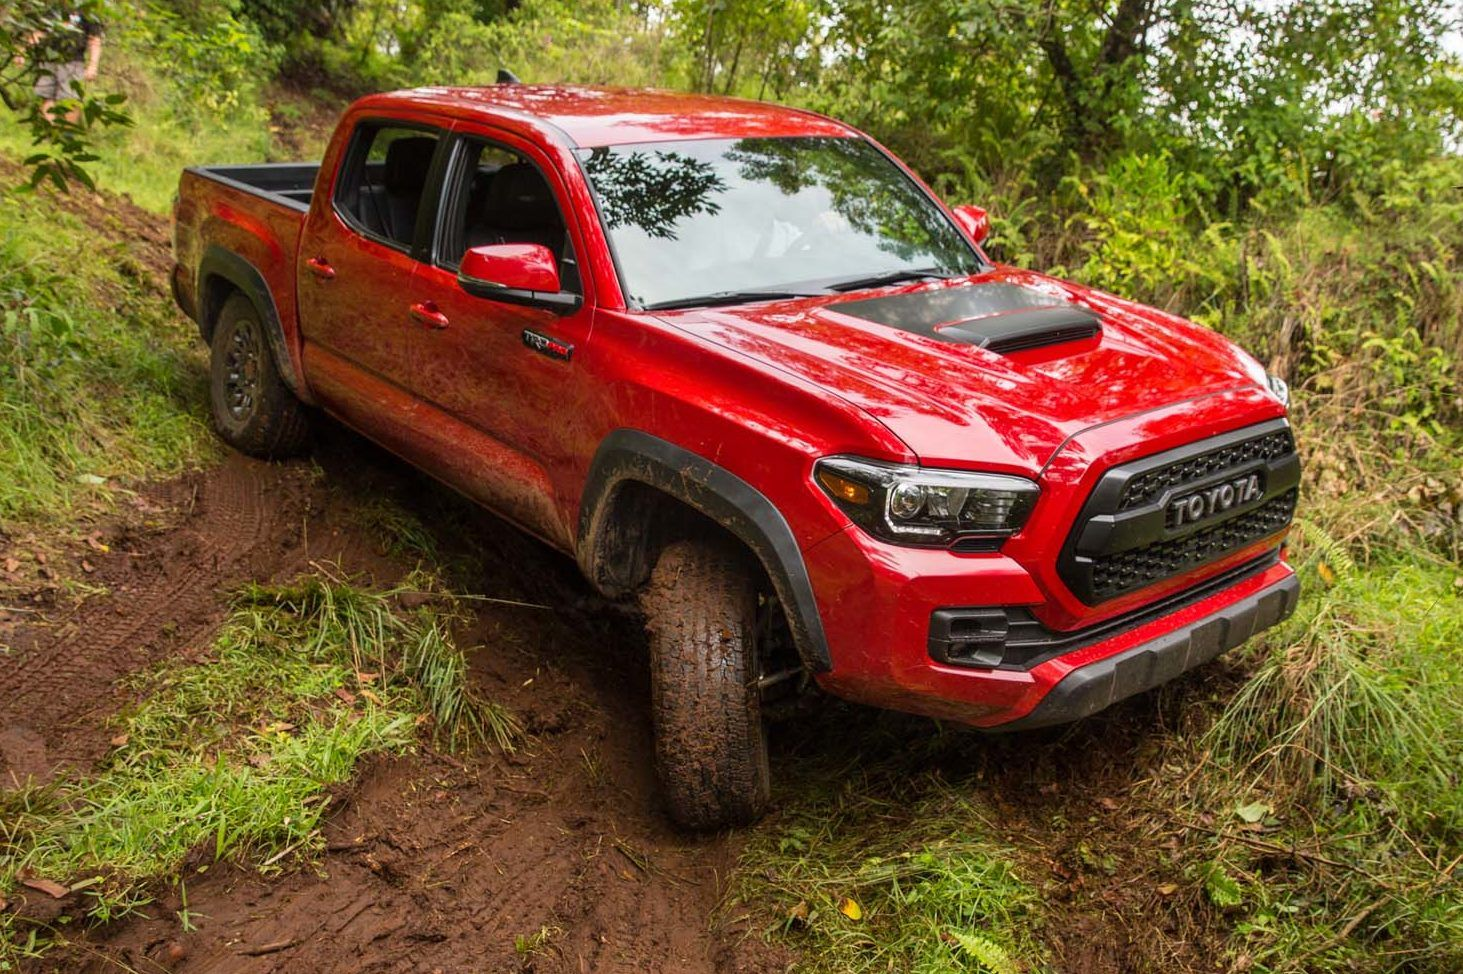 We Drive The 2017 Toyota Tacoma Trd Pro Off Road In Hawaii See